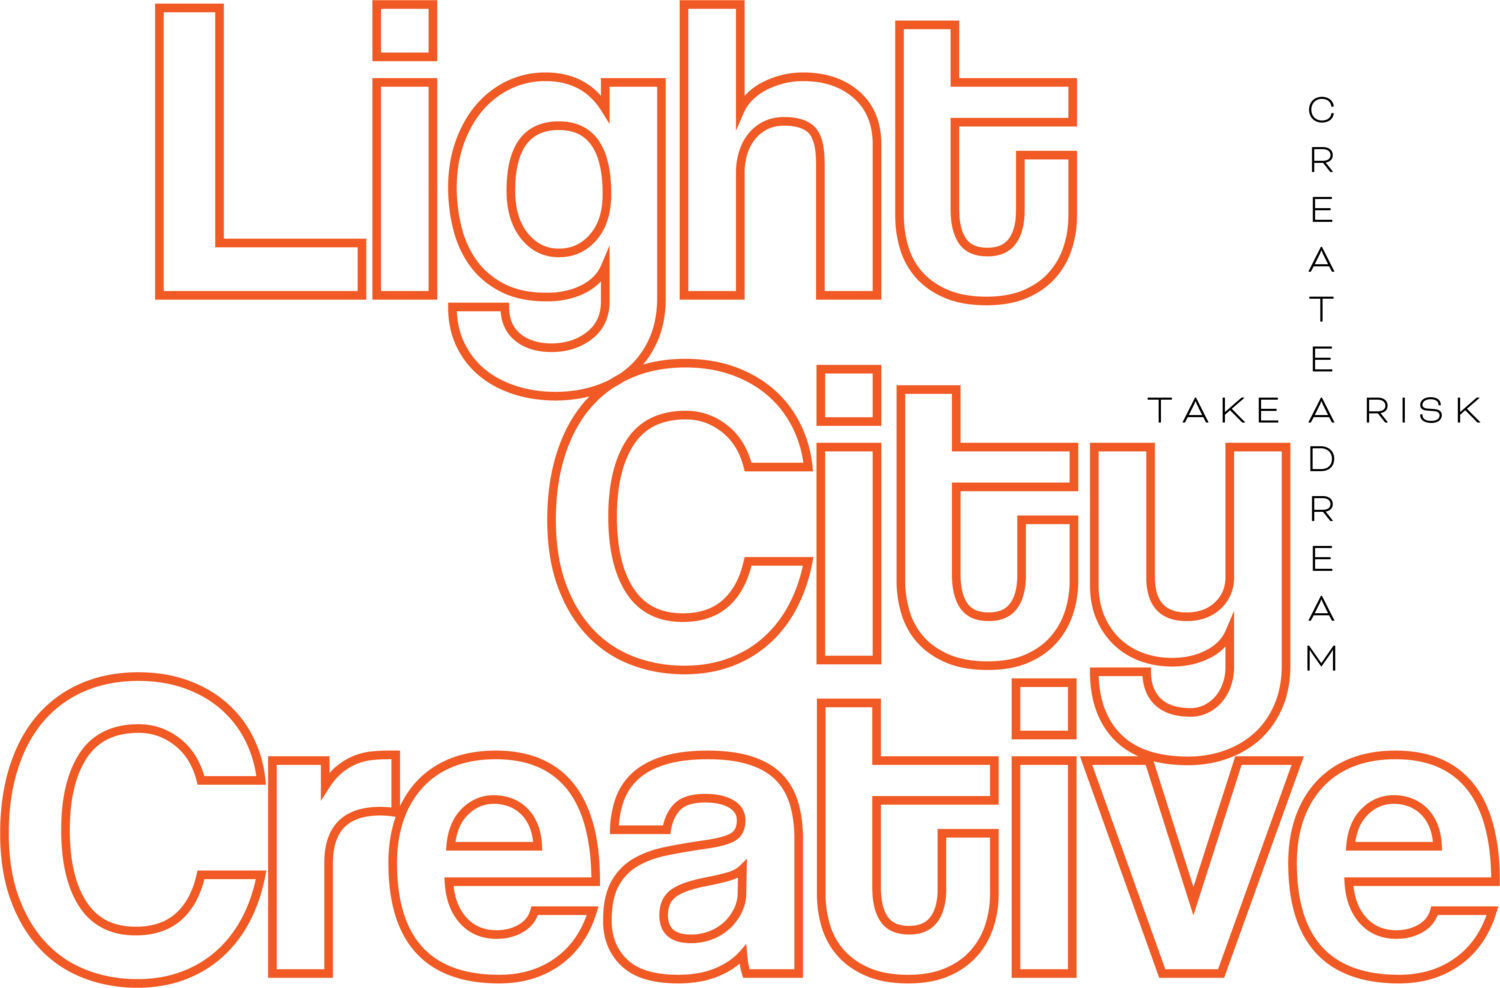 Light City Creative